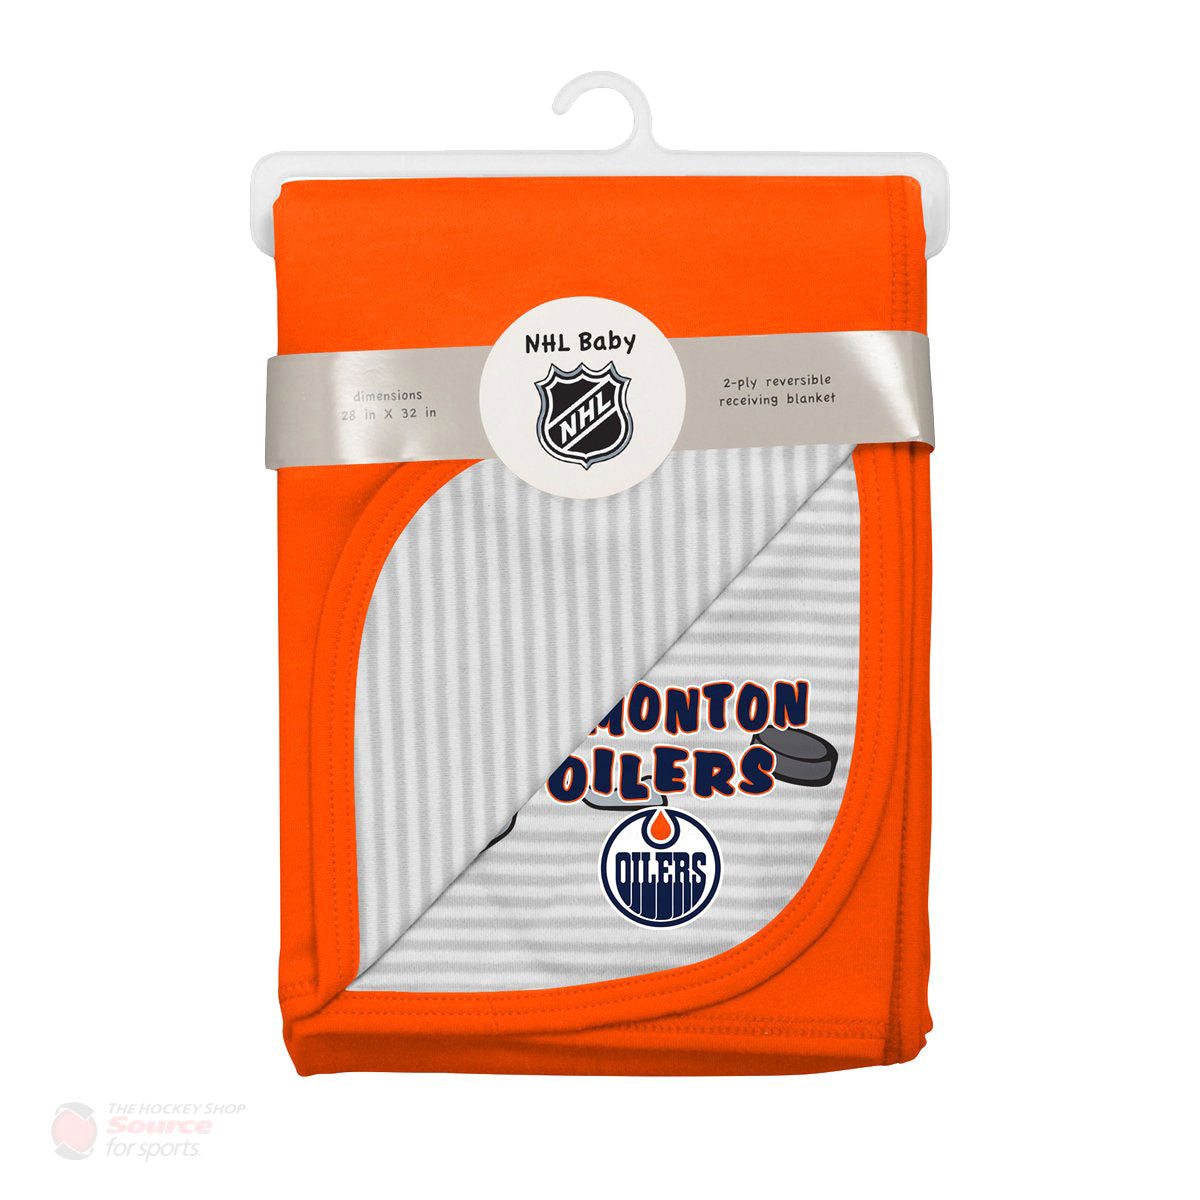 Outer Stuff NHL Lil Center Baby Blanket